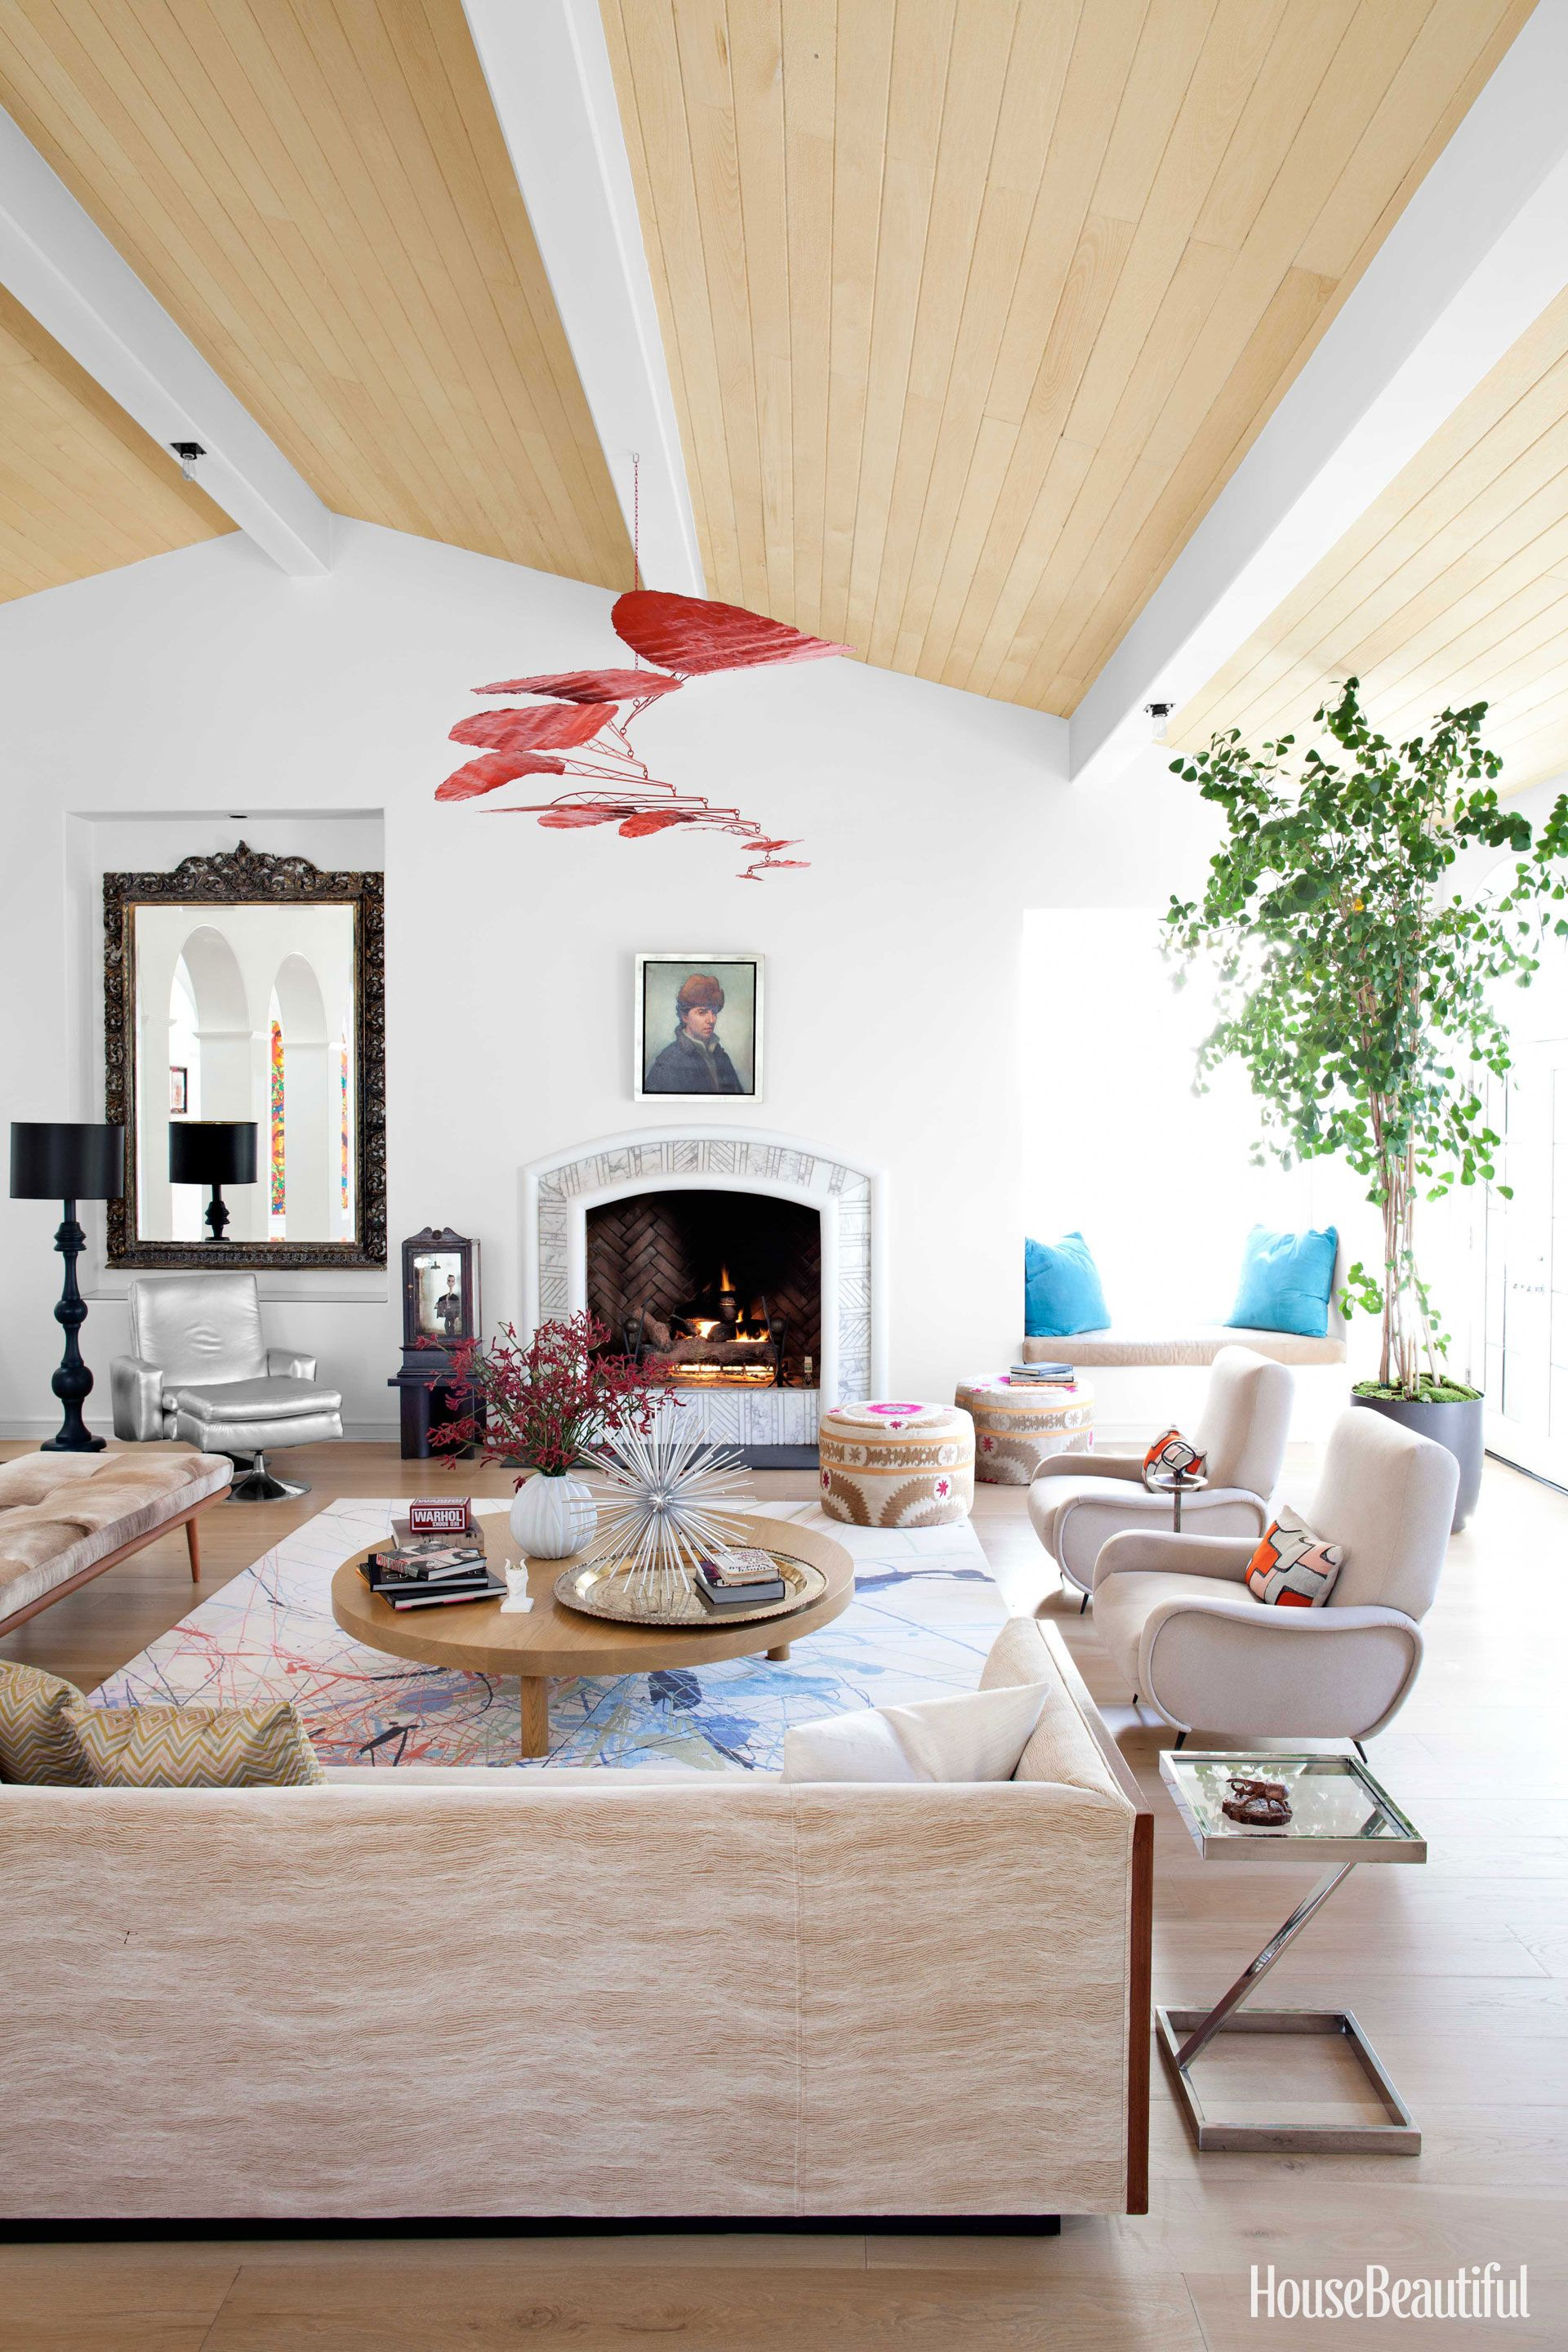 A Malibu Home With Electric Color Pinterest Room designer Paint